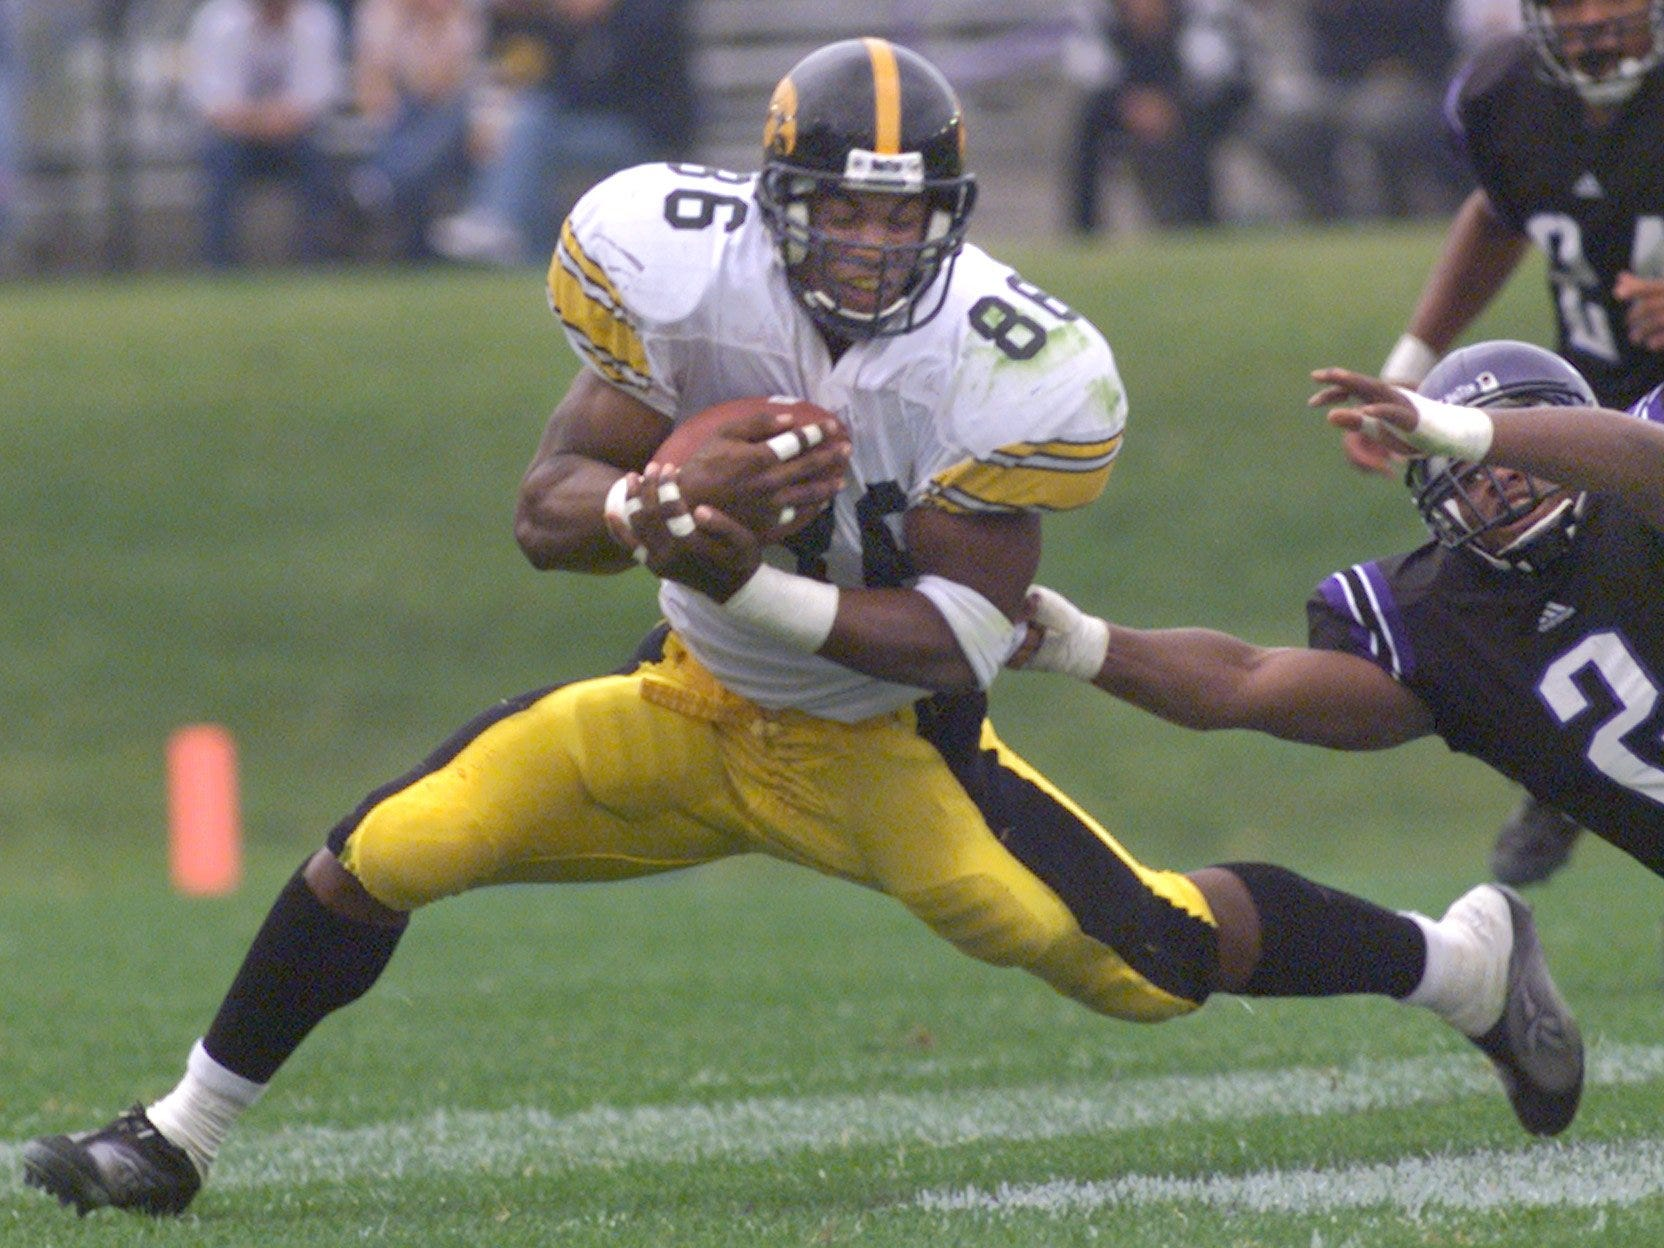 From 1999: Iowa tight end Austin Wheatley catches a pass from Randy Reiners while Kevin Bentley defends for Northwestern.